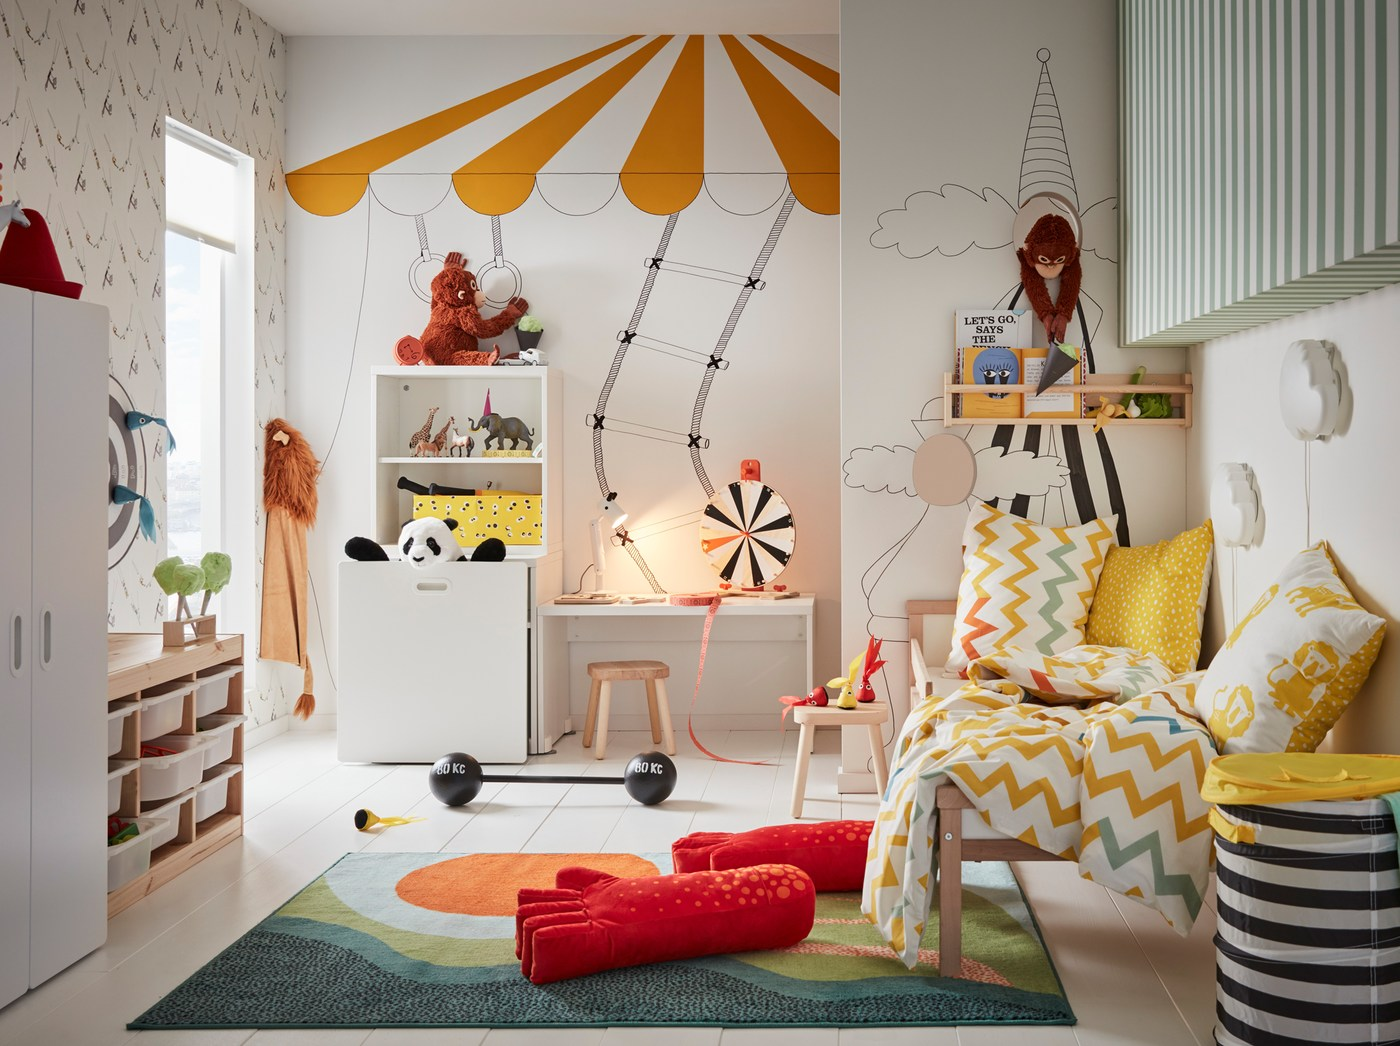 Kinderzimmer inspirationen f r dein zuhause ikea for Wandregal kinderzimmer ikea